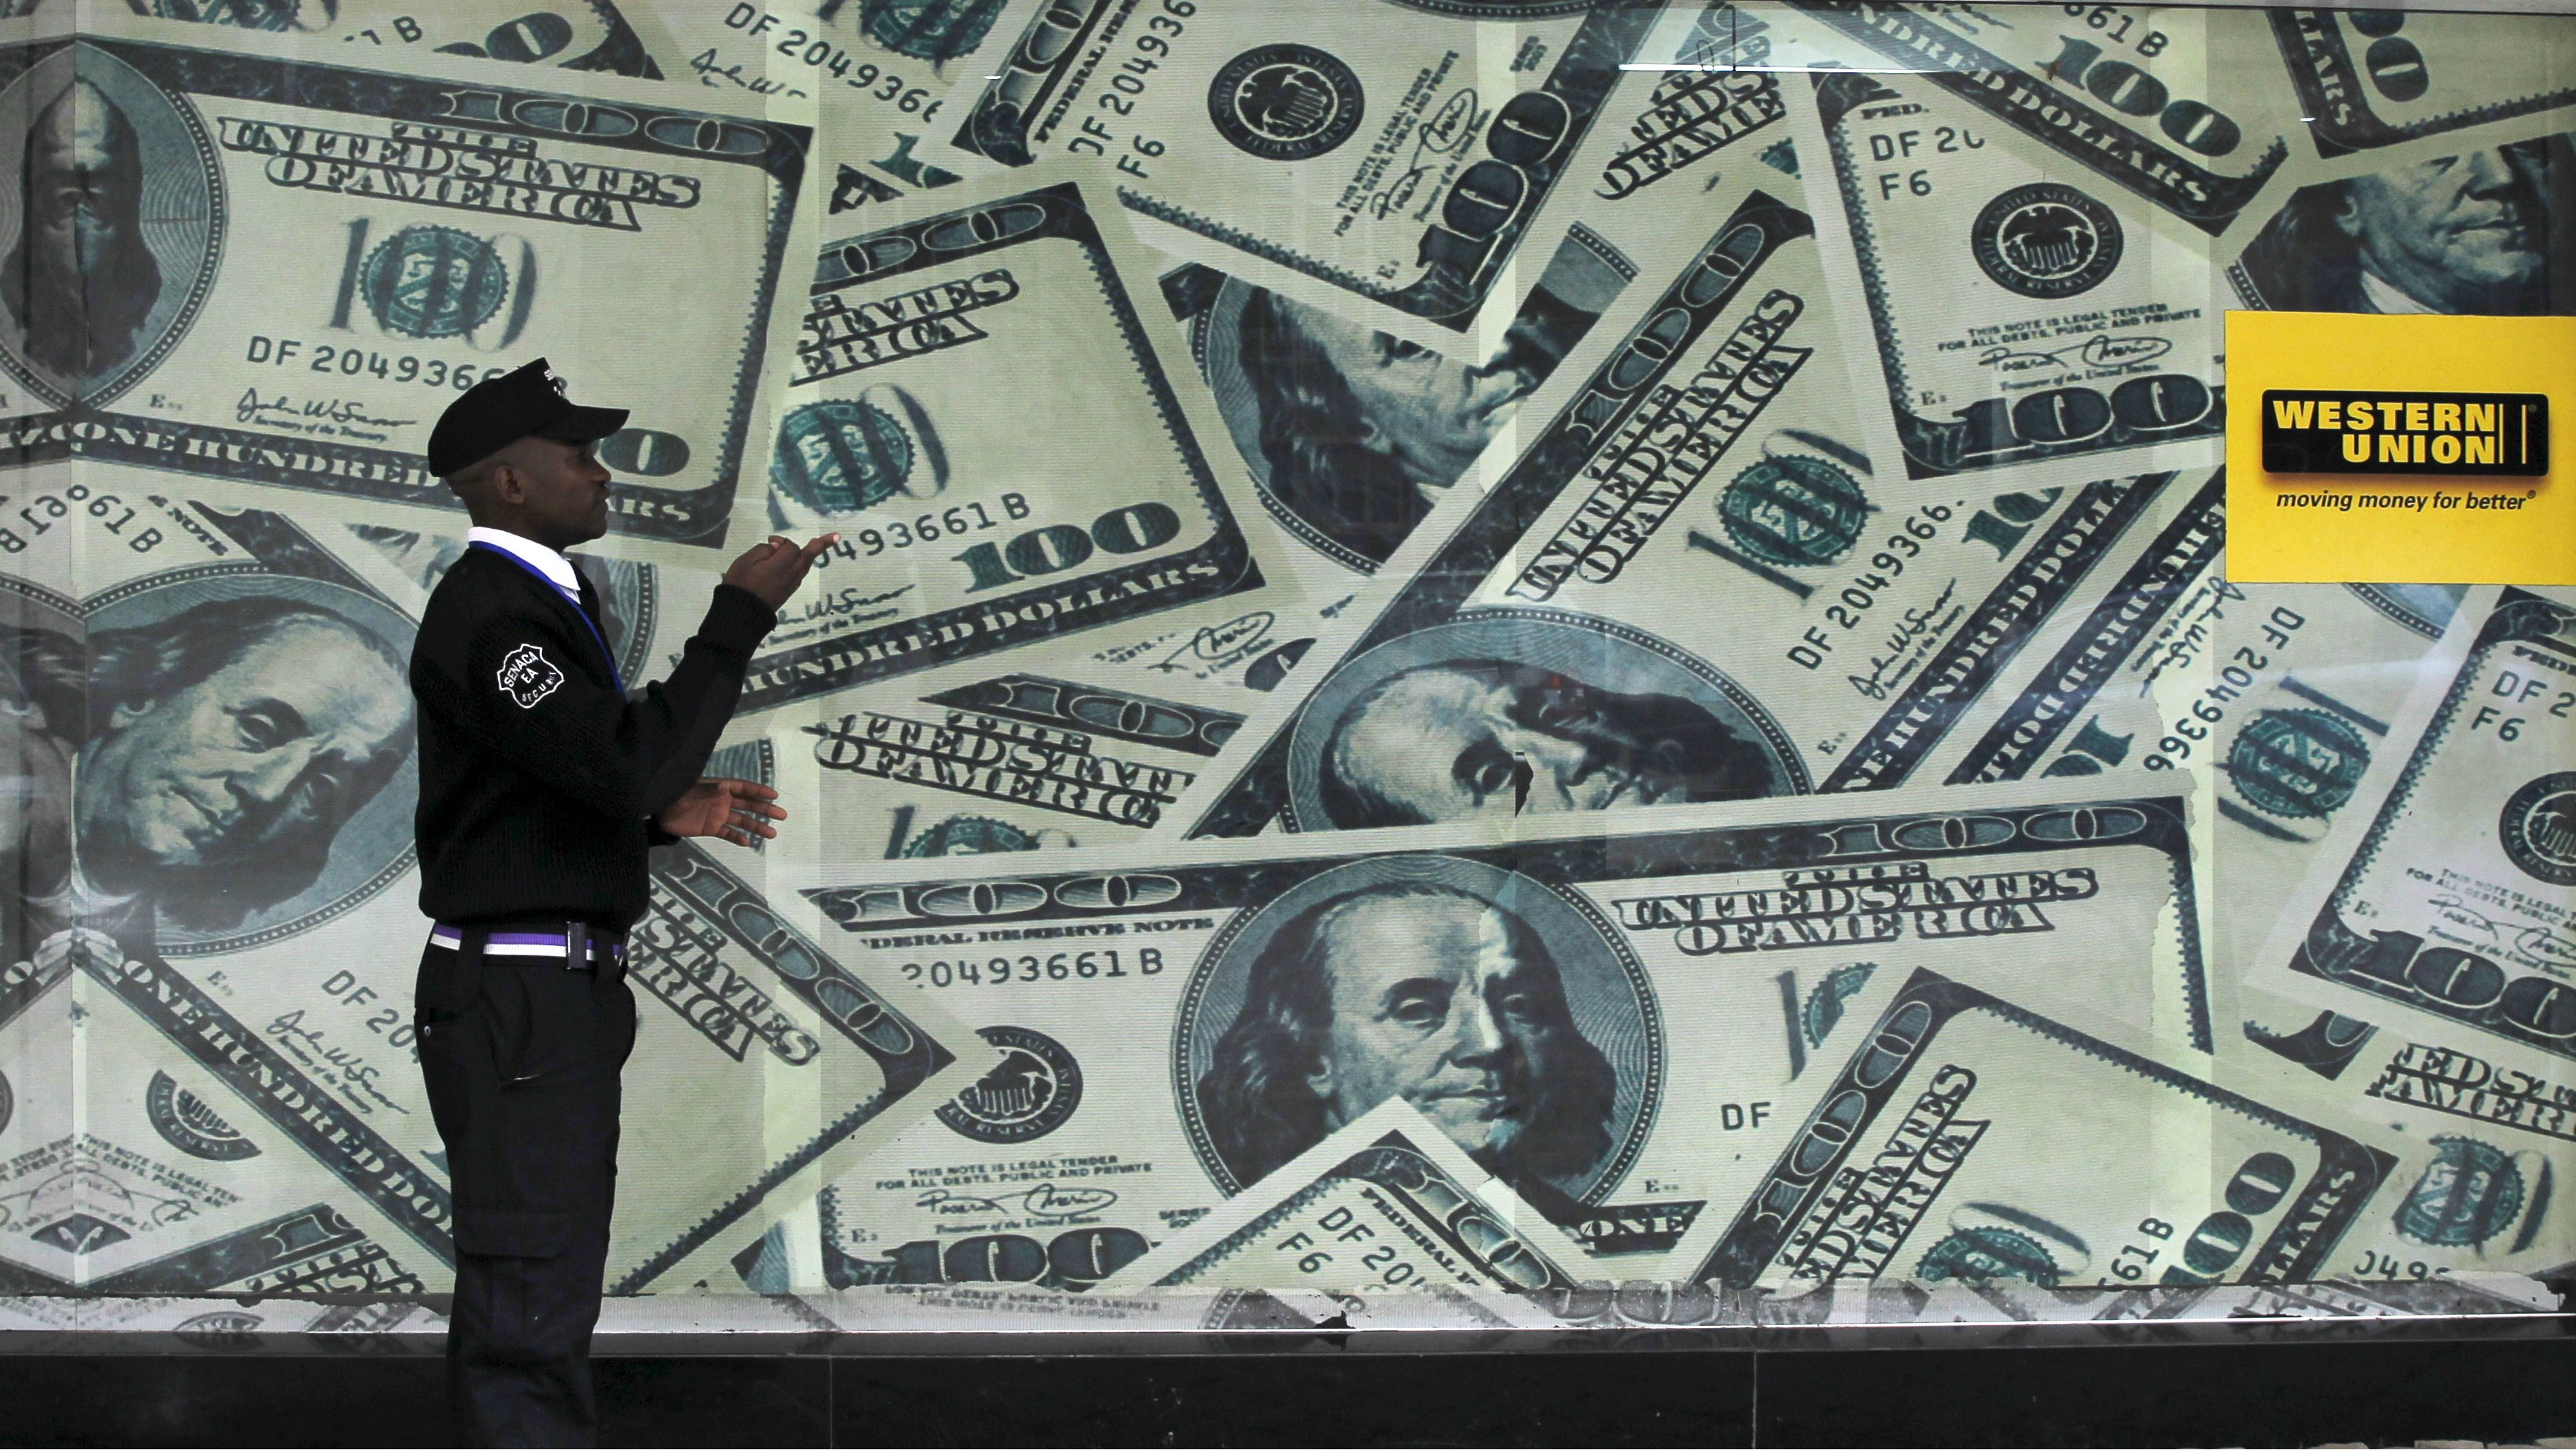 A security passing by a wall of money.